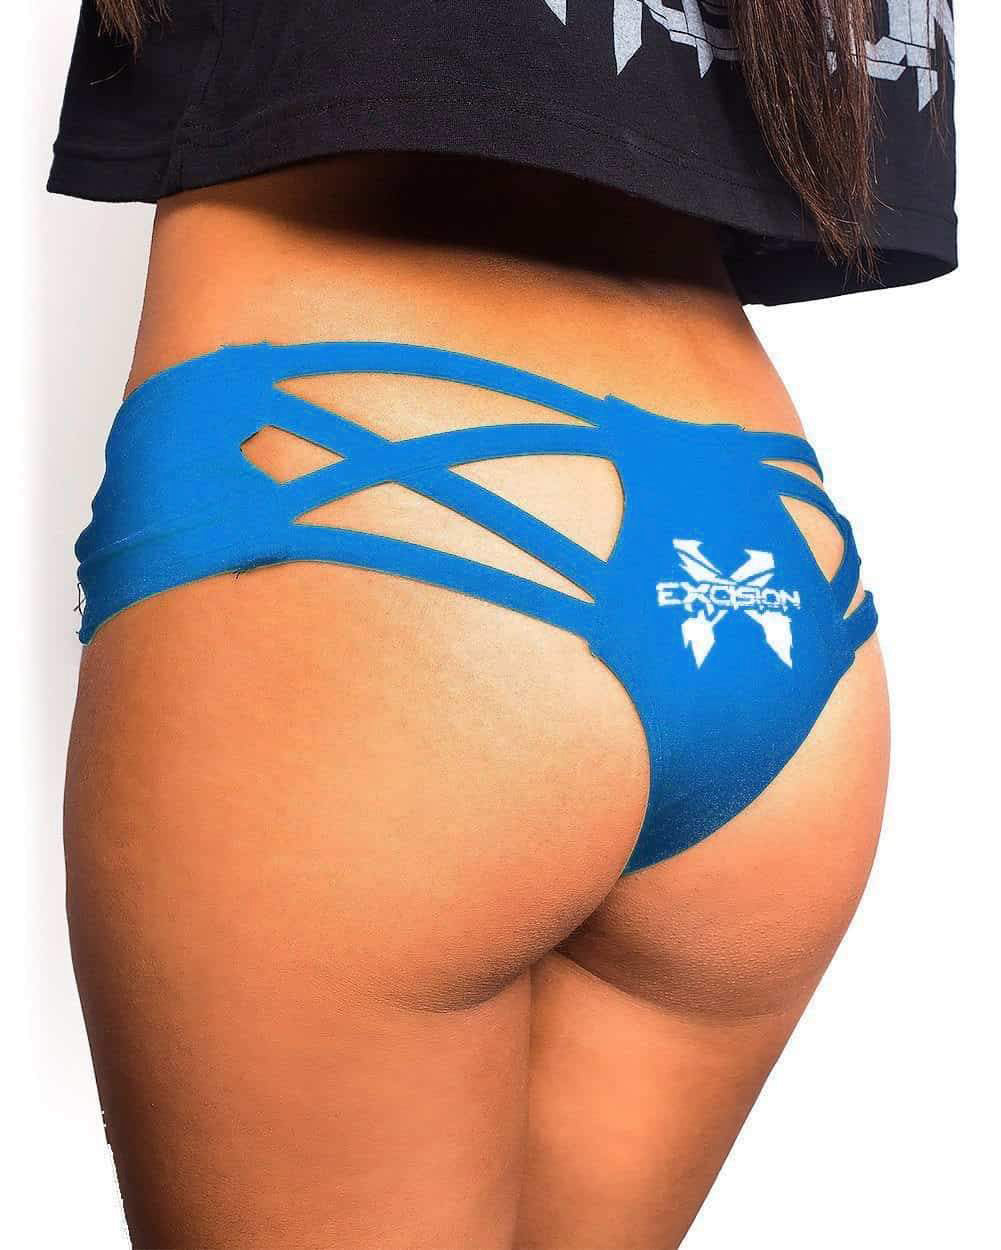 Excision X Cross Cut Out Booty Shorts - Blue